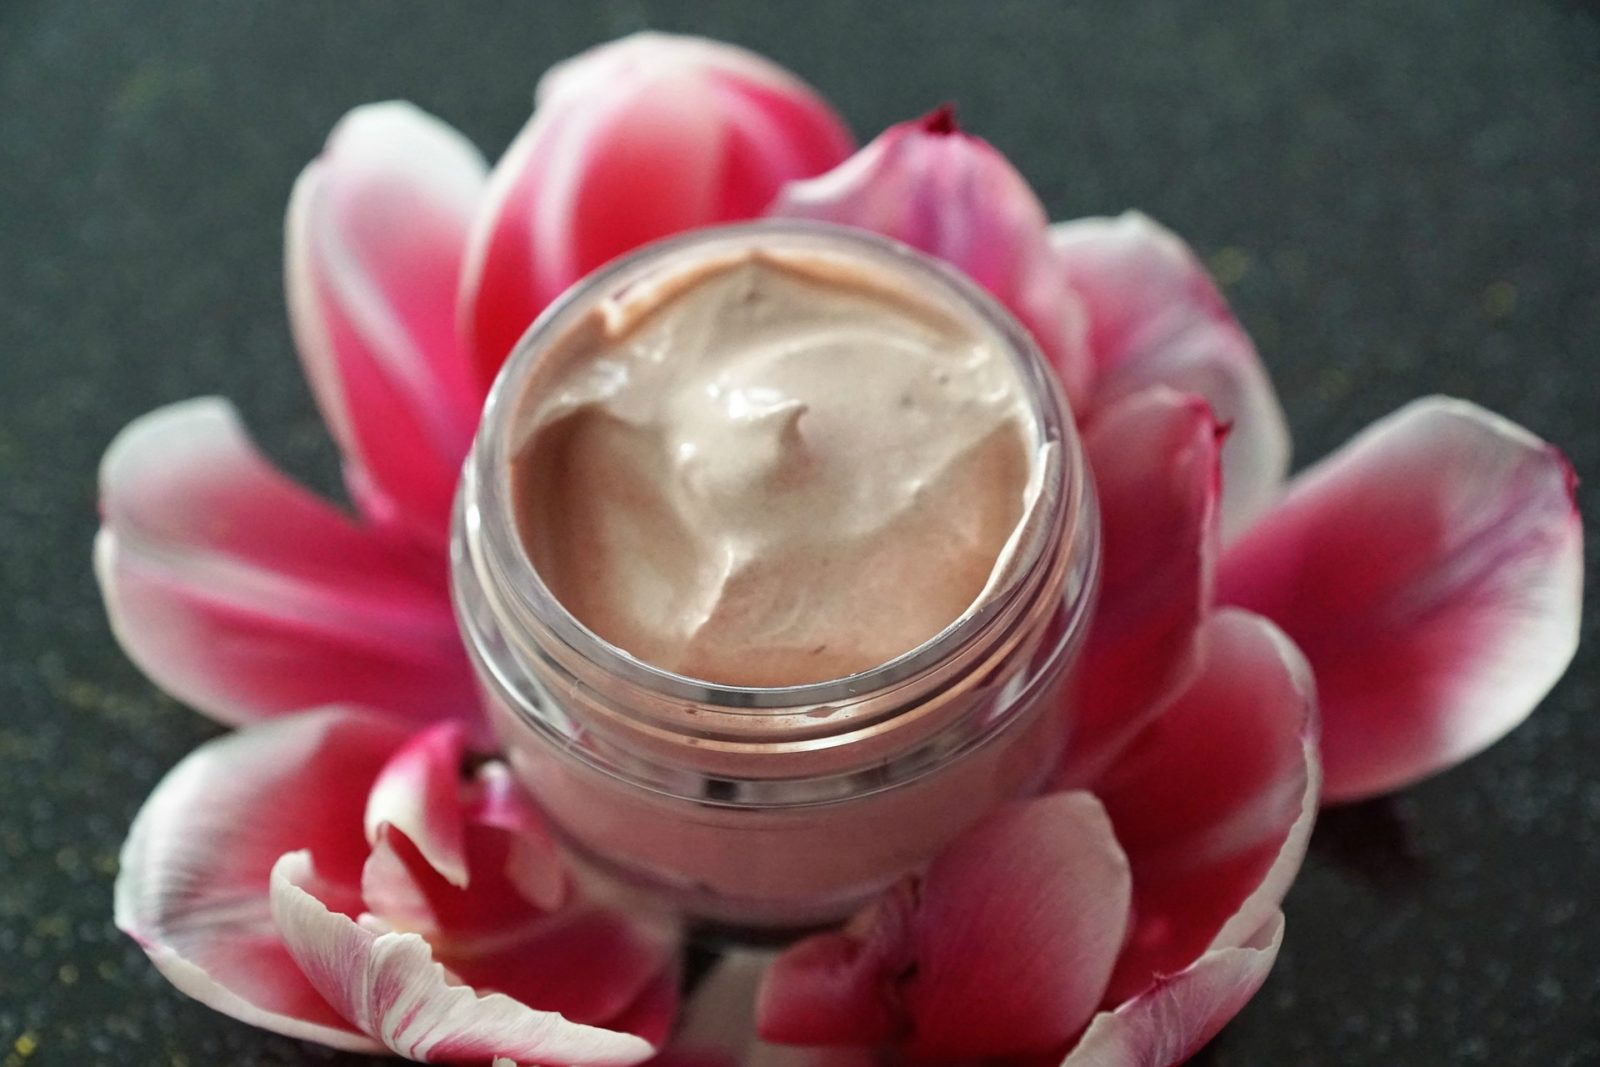 Products containing fruits will likely be a good moisturiser, but won't offer many other anti-ageing properties.